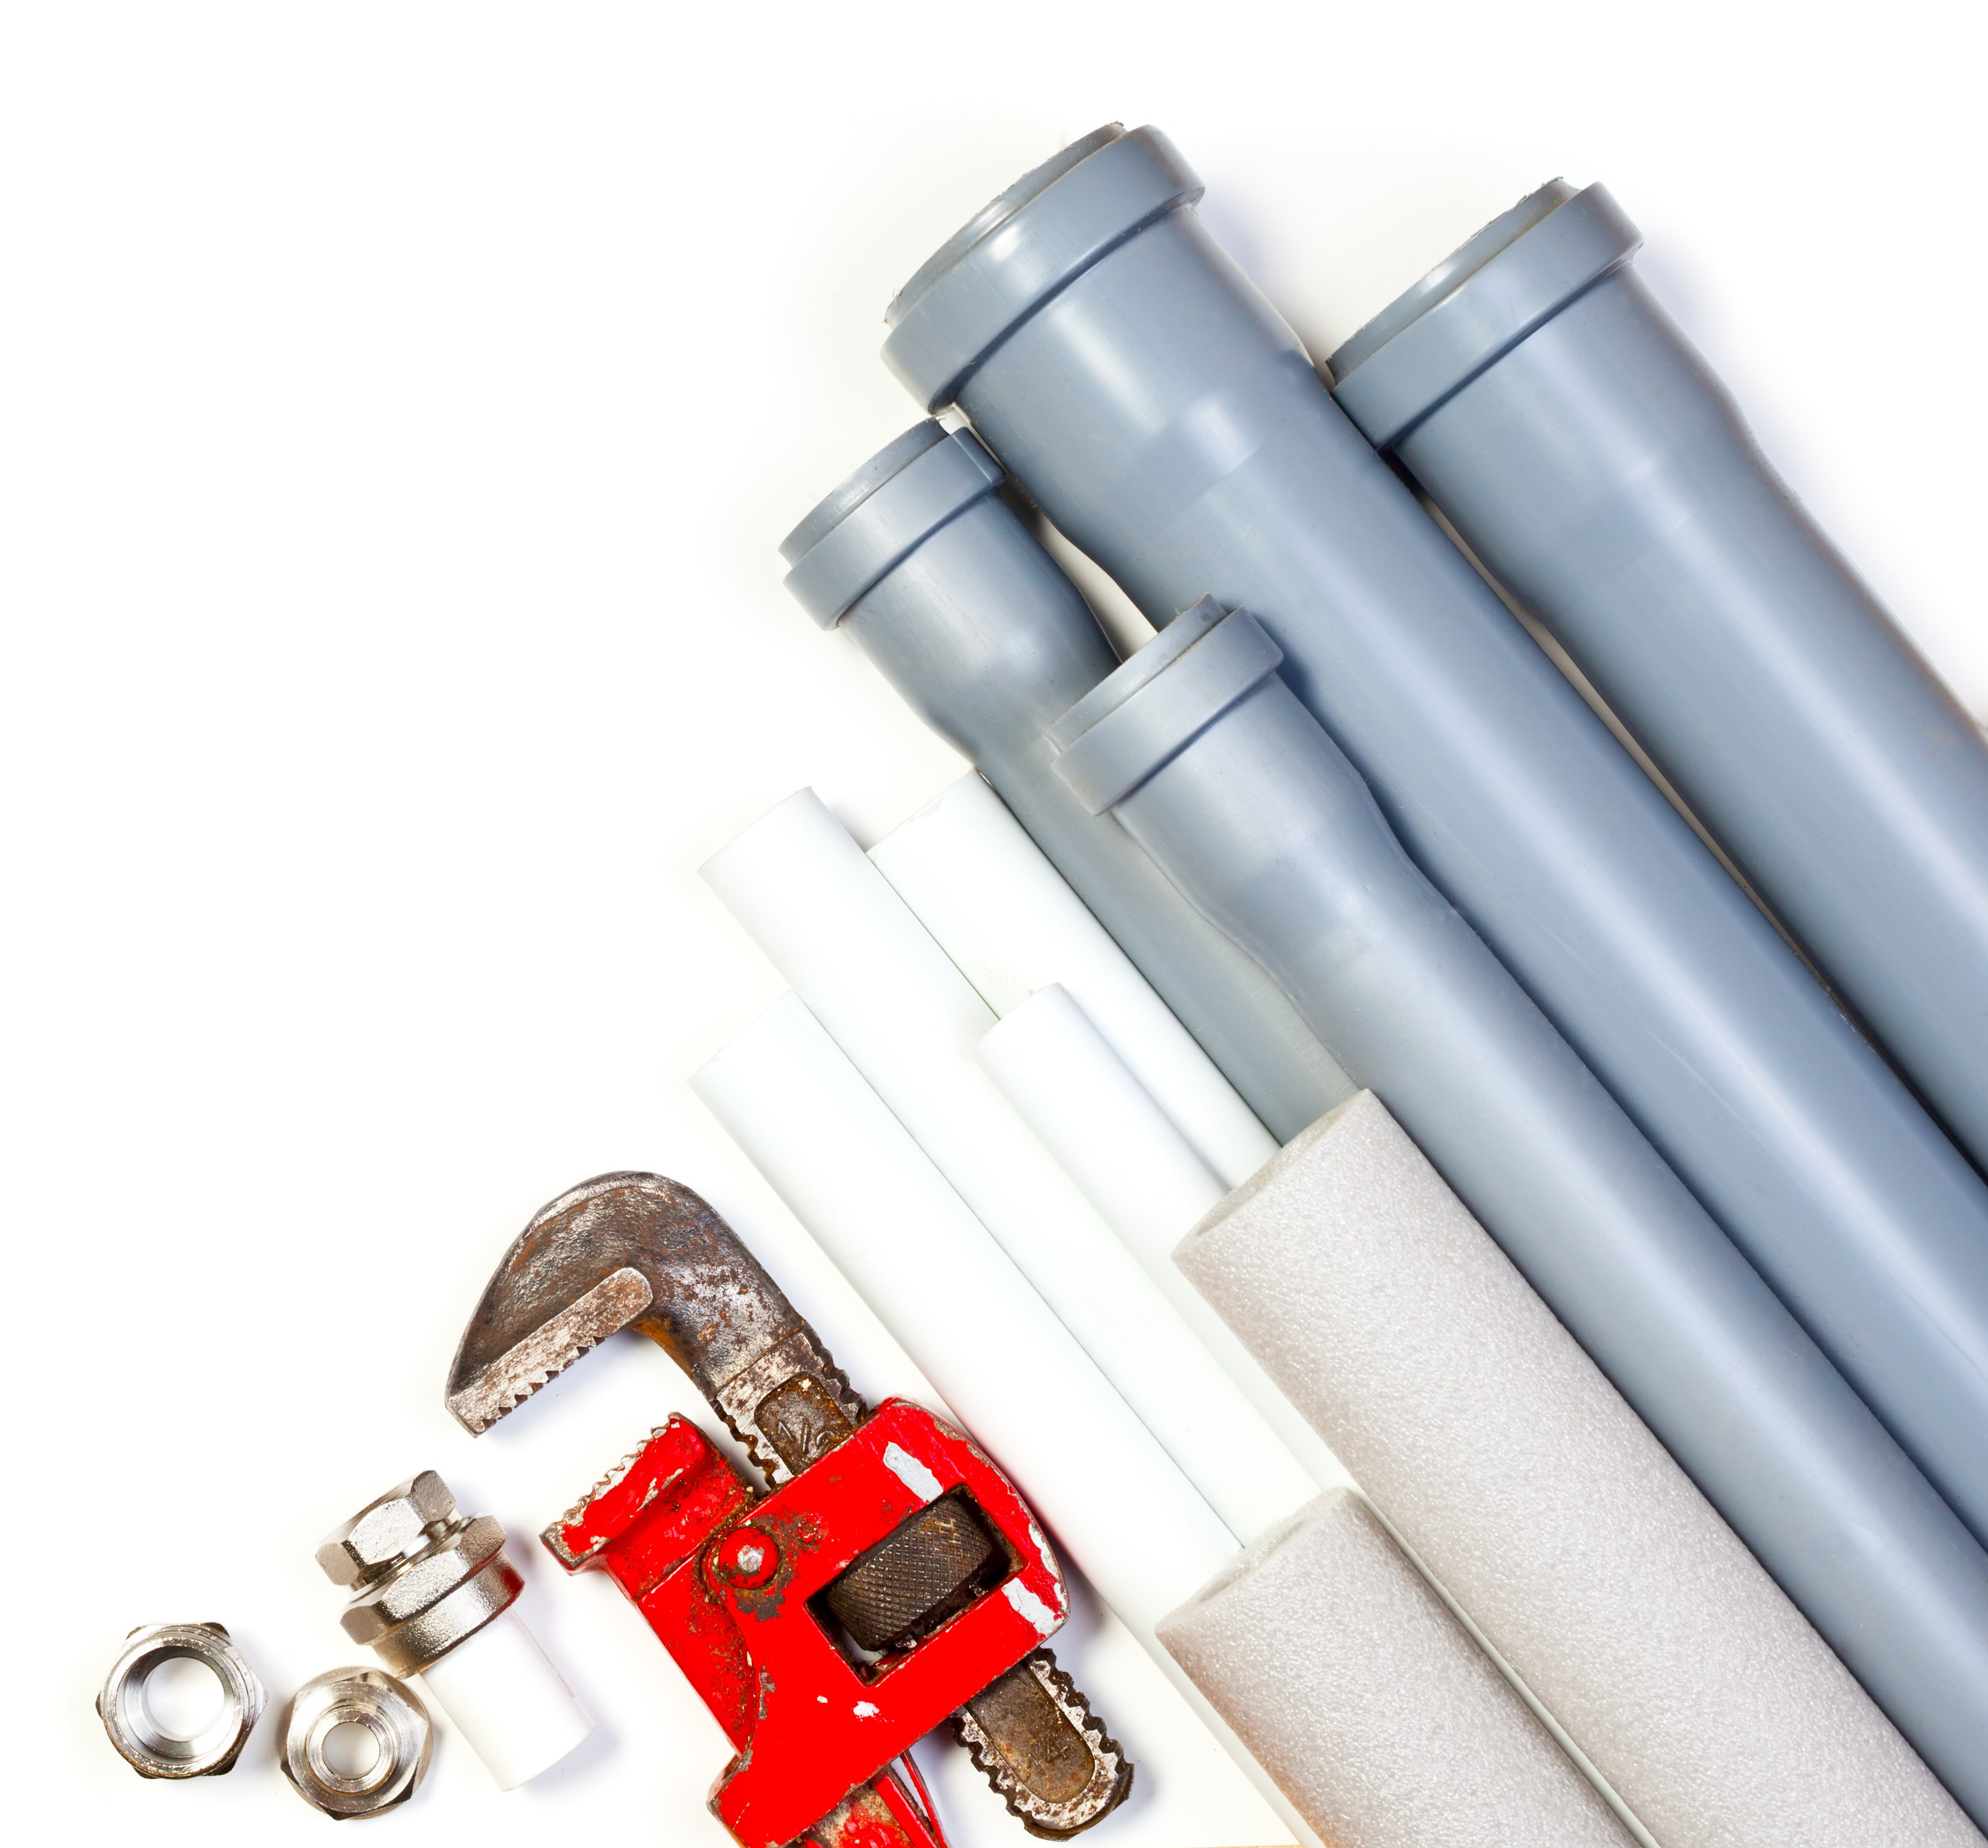 Plumbing pipes and wrench